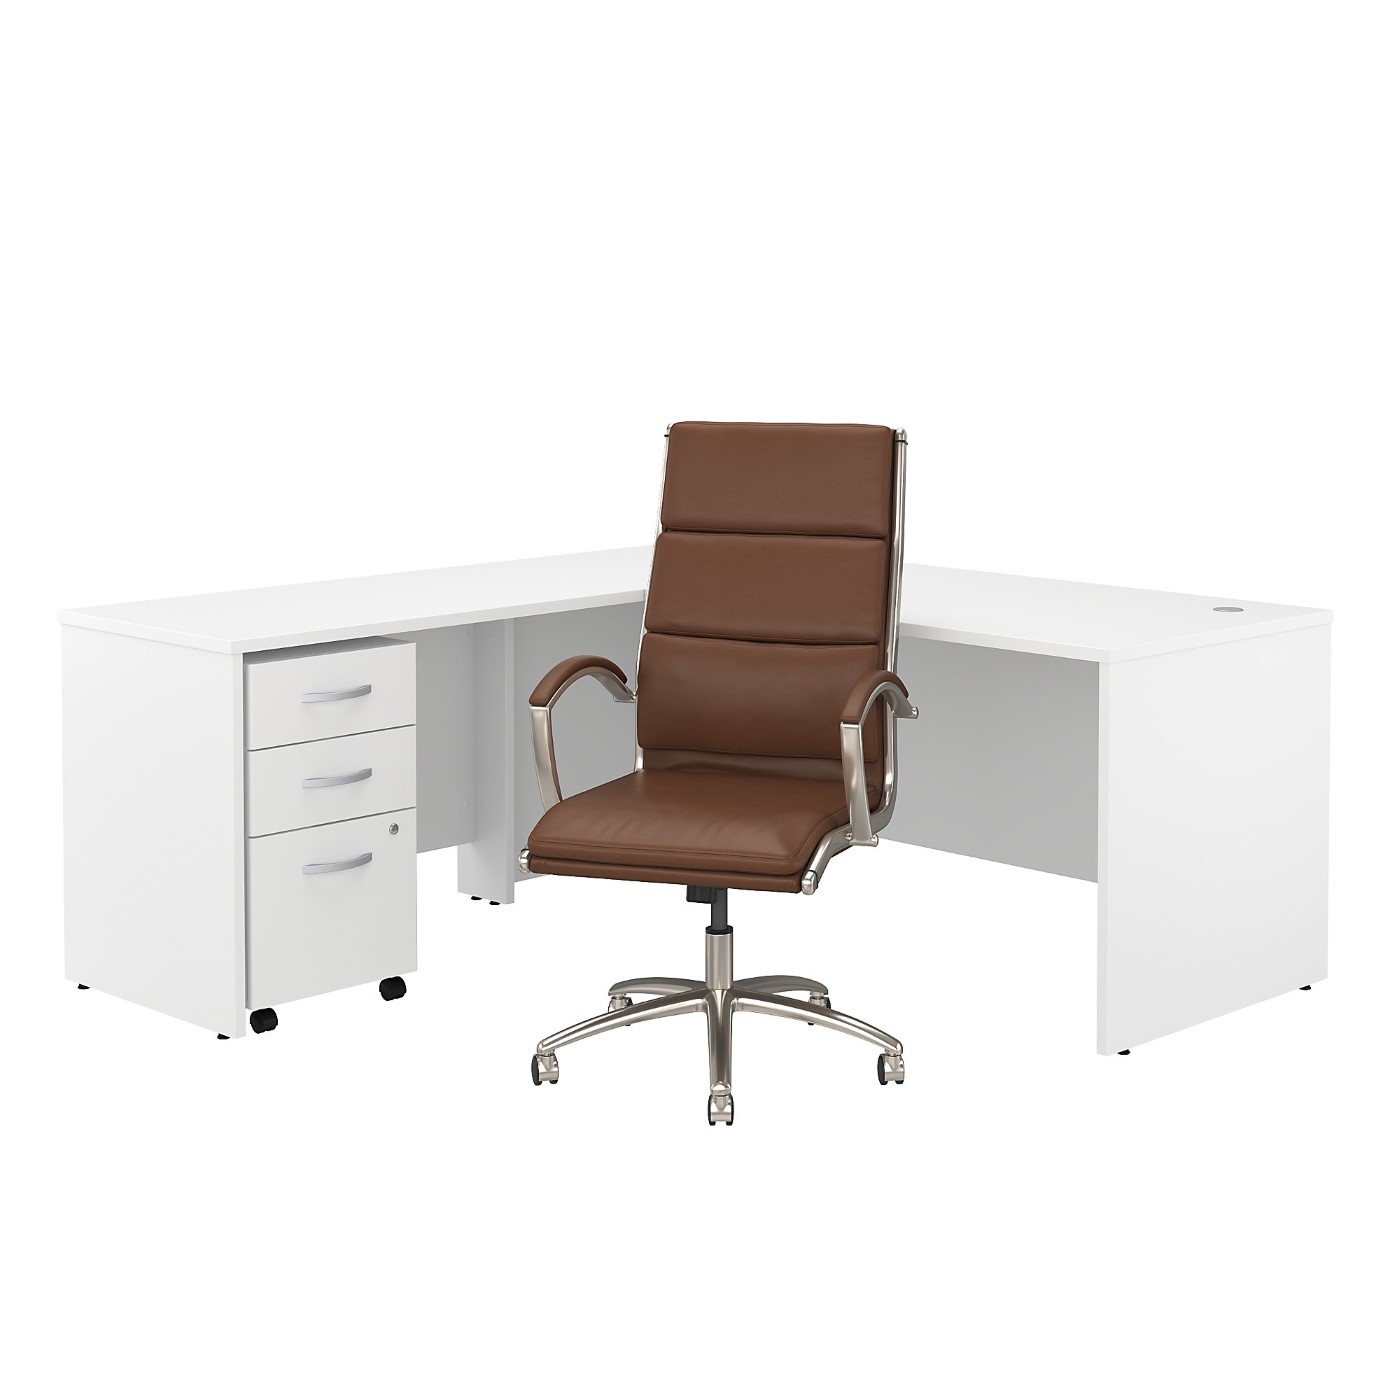 BUSH BUSINESS FURNITURE STUDIO C 72W L SHAPED DESK WITH MOBILE FILE CABINET AND HIGH BACK OFFICE CHAIR. FREE SHIPPING